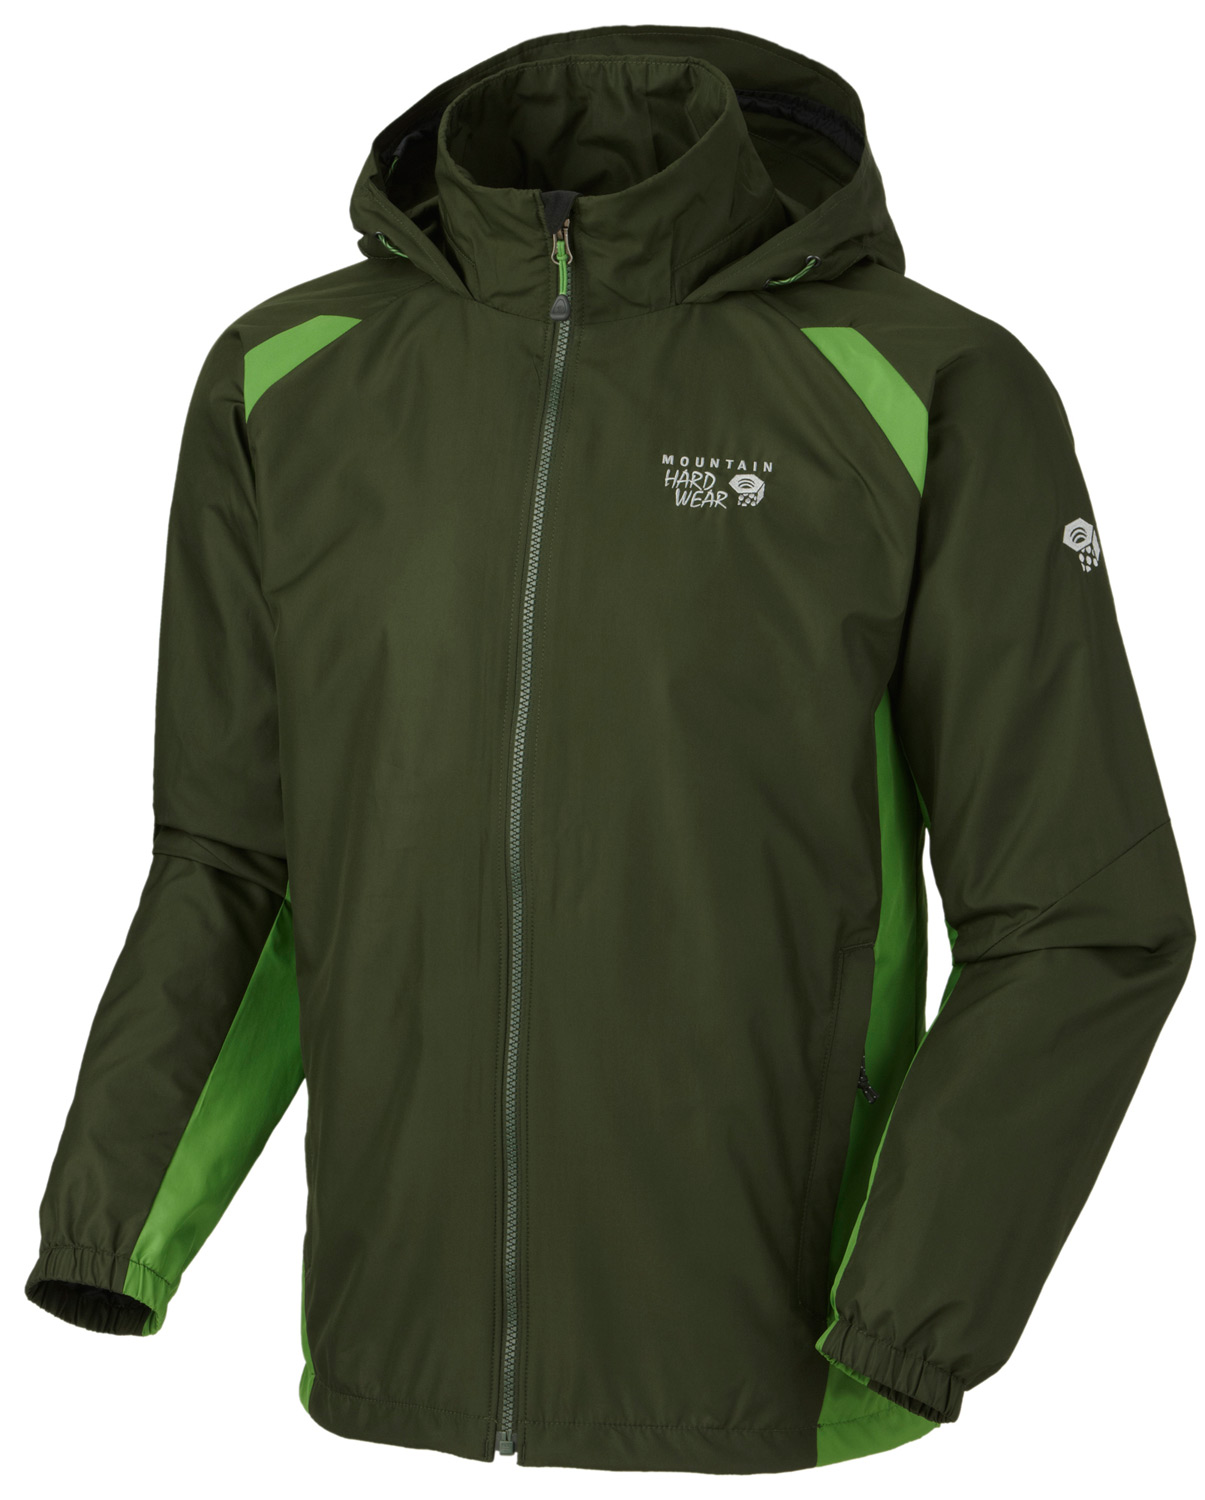 A lightweight, windproof jacket for backcountry, and everyday useKey Features of the Mountain Hardwear Windrush Jacket: Attached, adjustable roll-away hood Single hem drawcord for quick fit adjustment Full elastic cuffs slide easily over layers to seal in warmth Two mesh lined hand pockets - $51.95